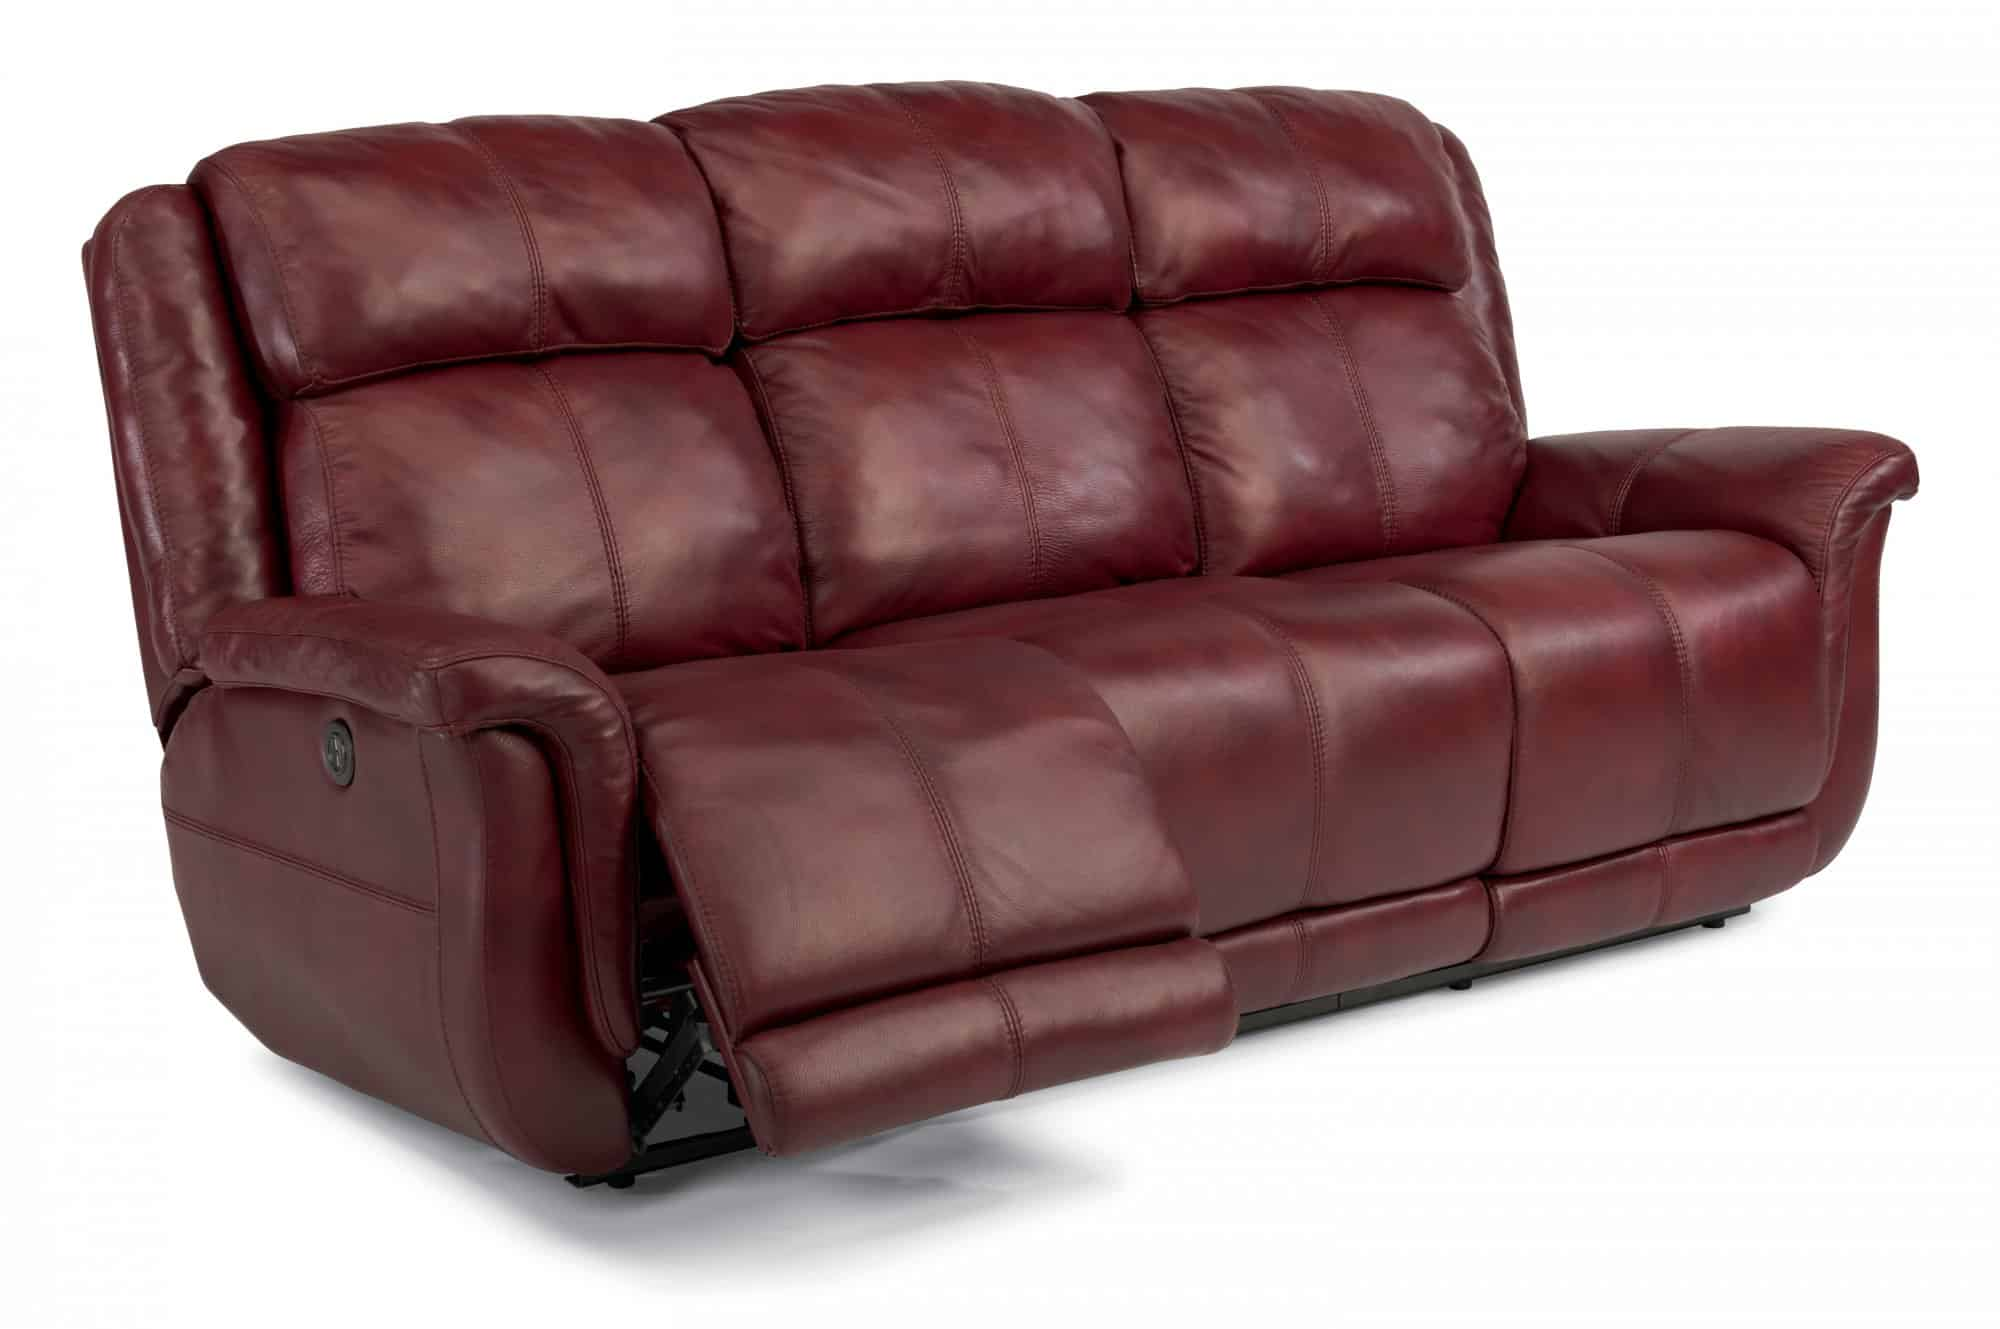 european sofas low seating sofa flexsteel leather  brookings